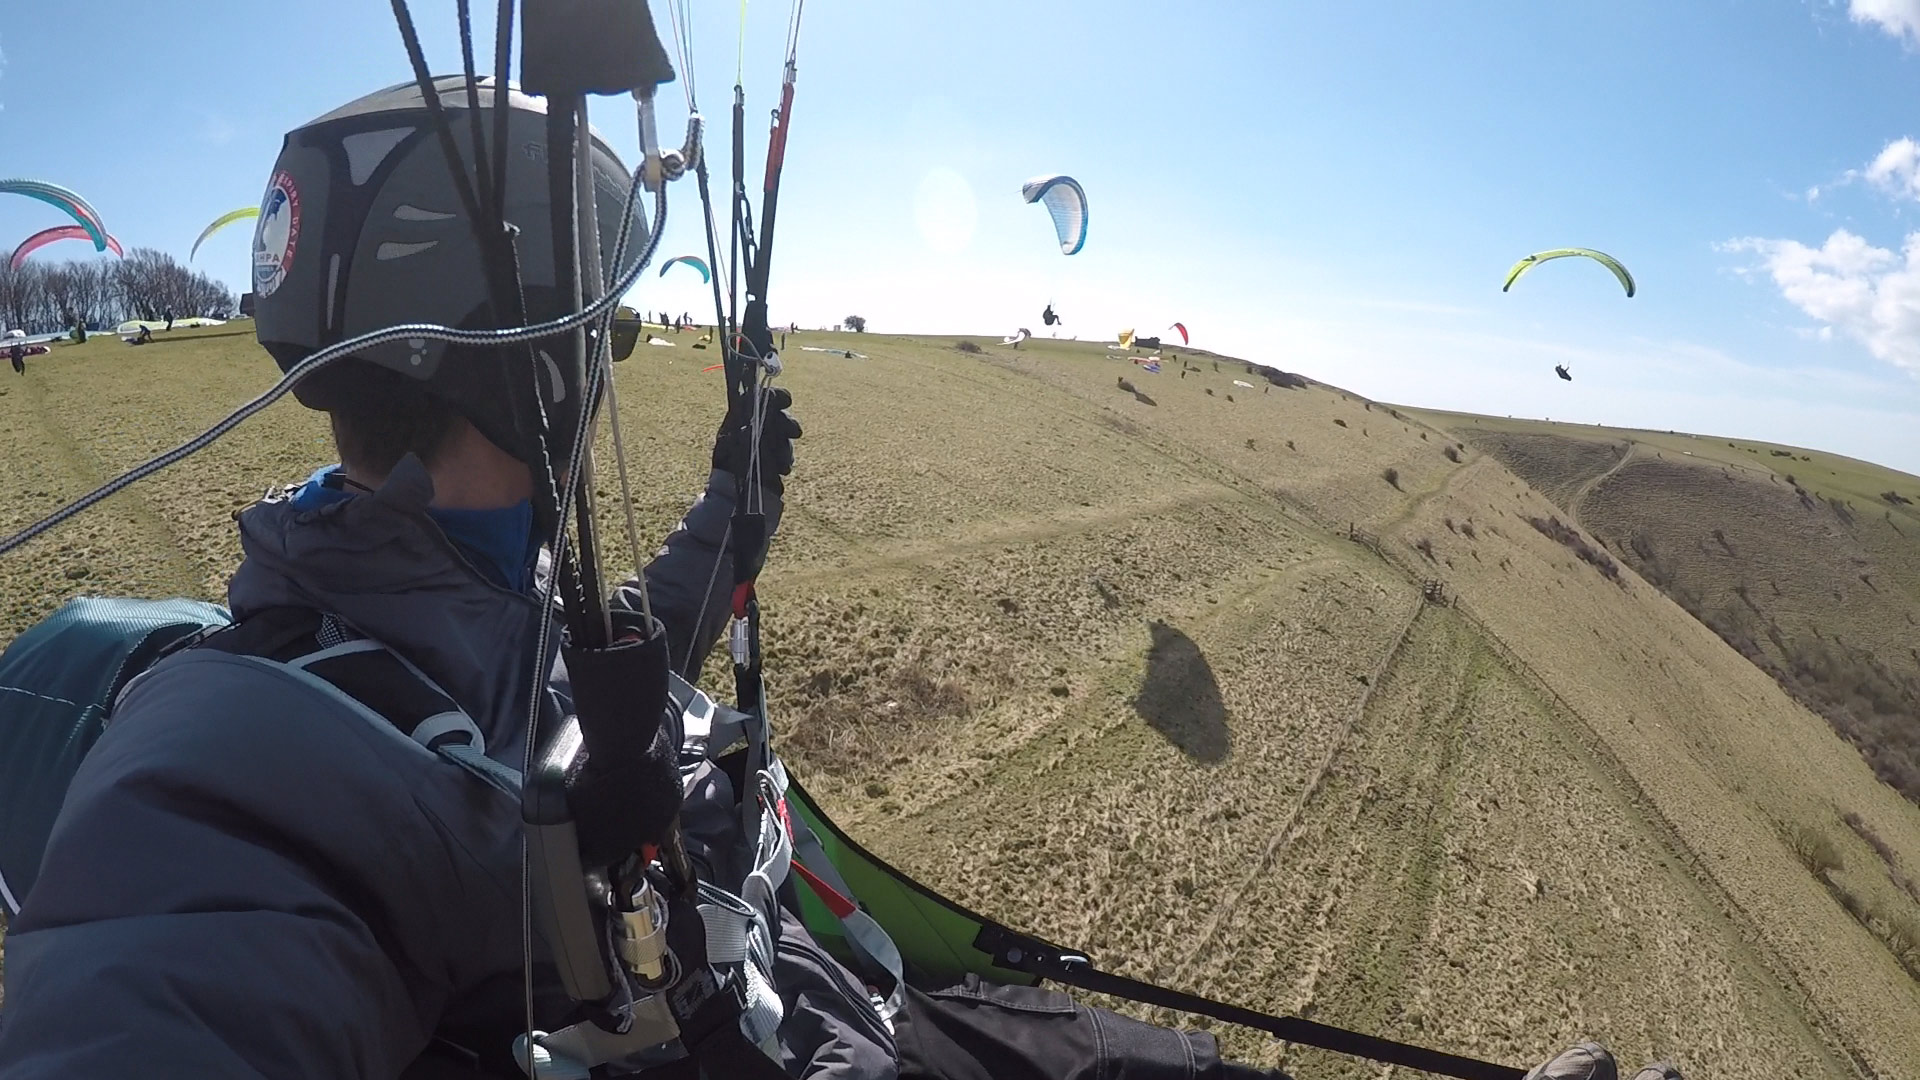 How to fly in paragliding traffic: look ahead